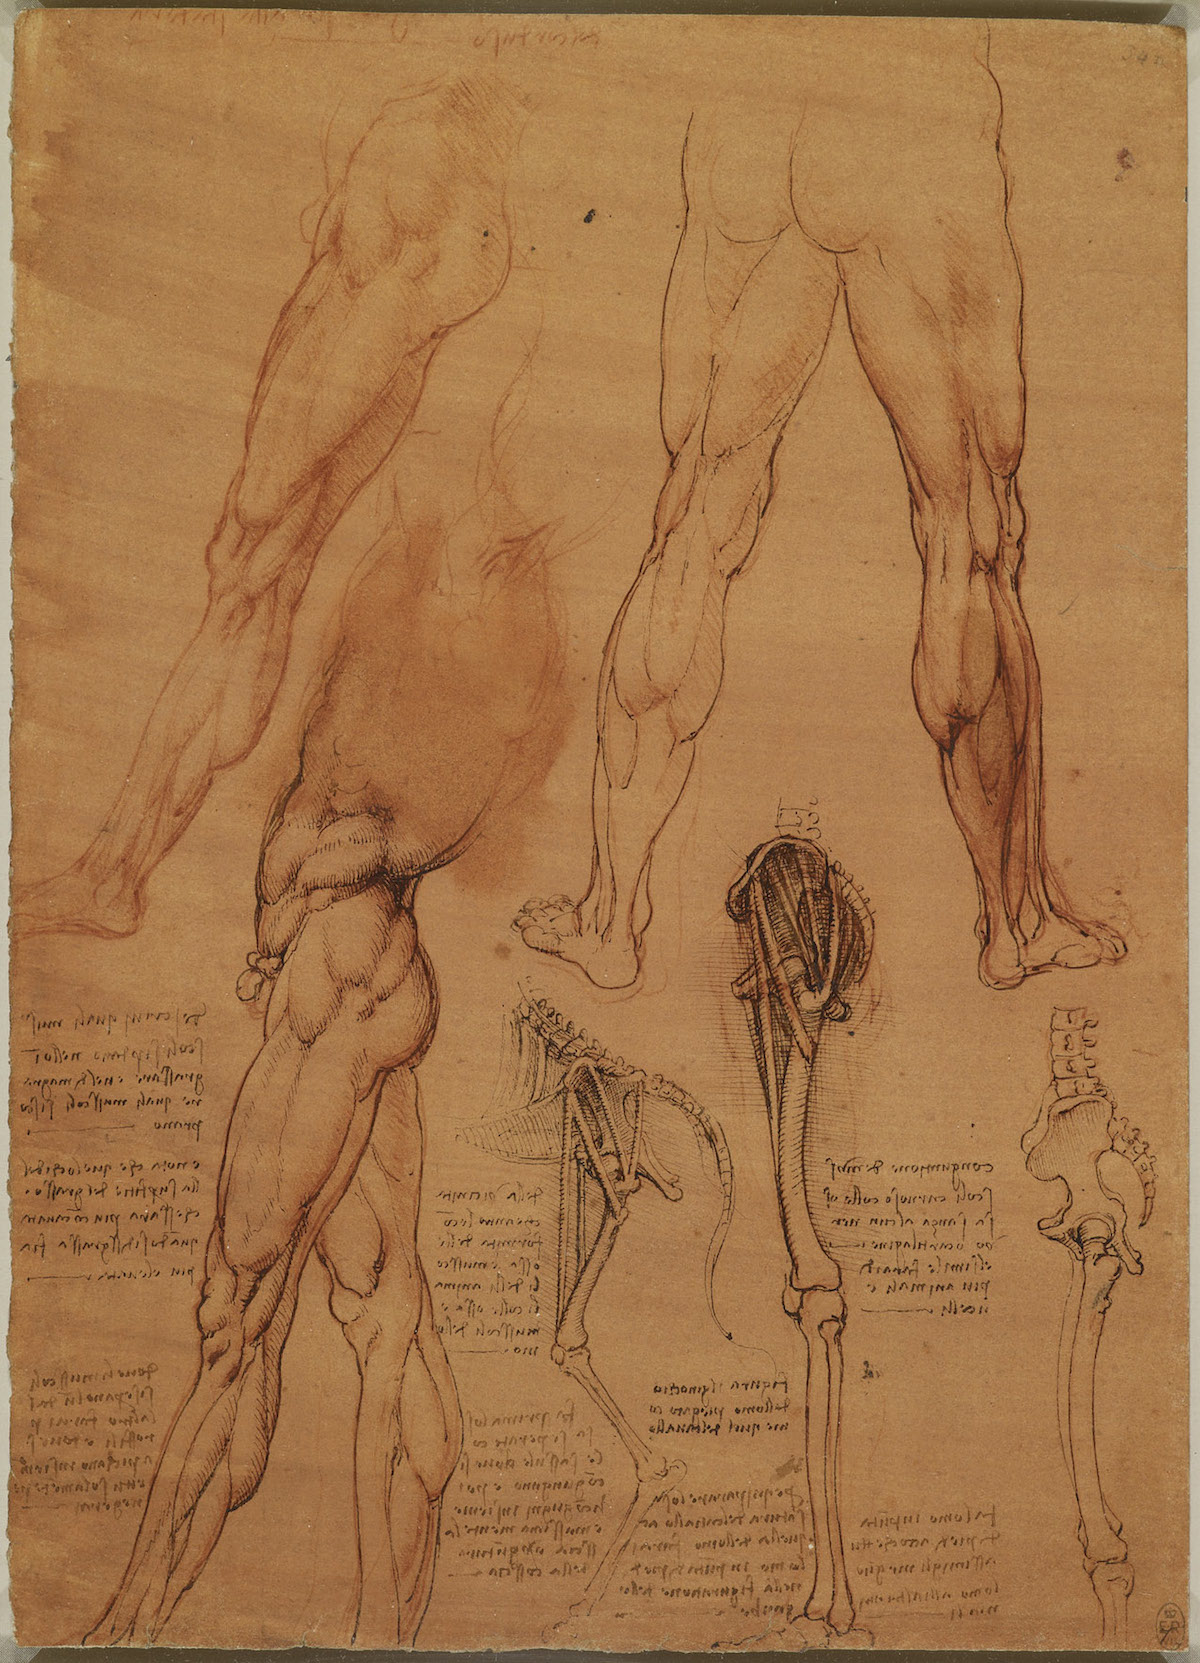 The leg muscles and bones of man and horse c.1506-8